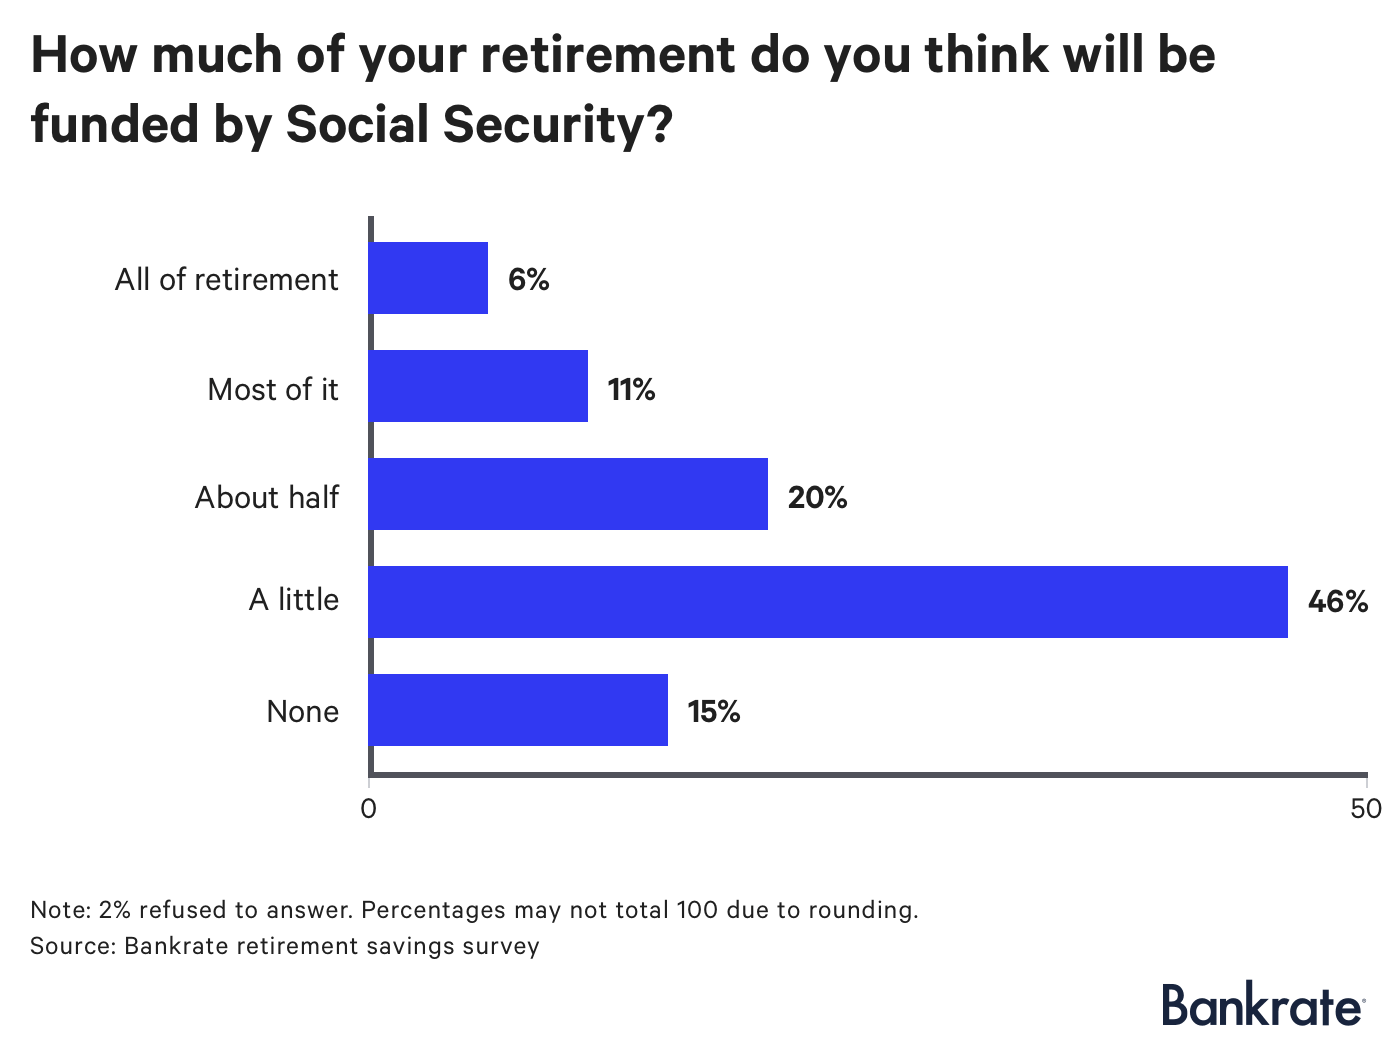 Chart: How much of retirement do you think will be funded by Social Security?